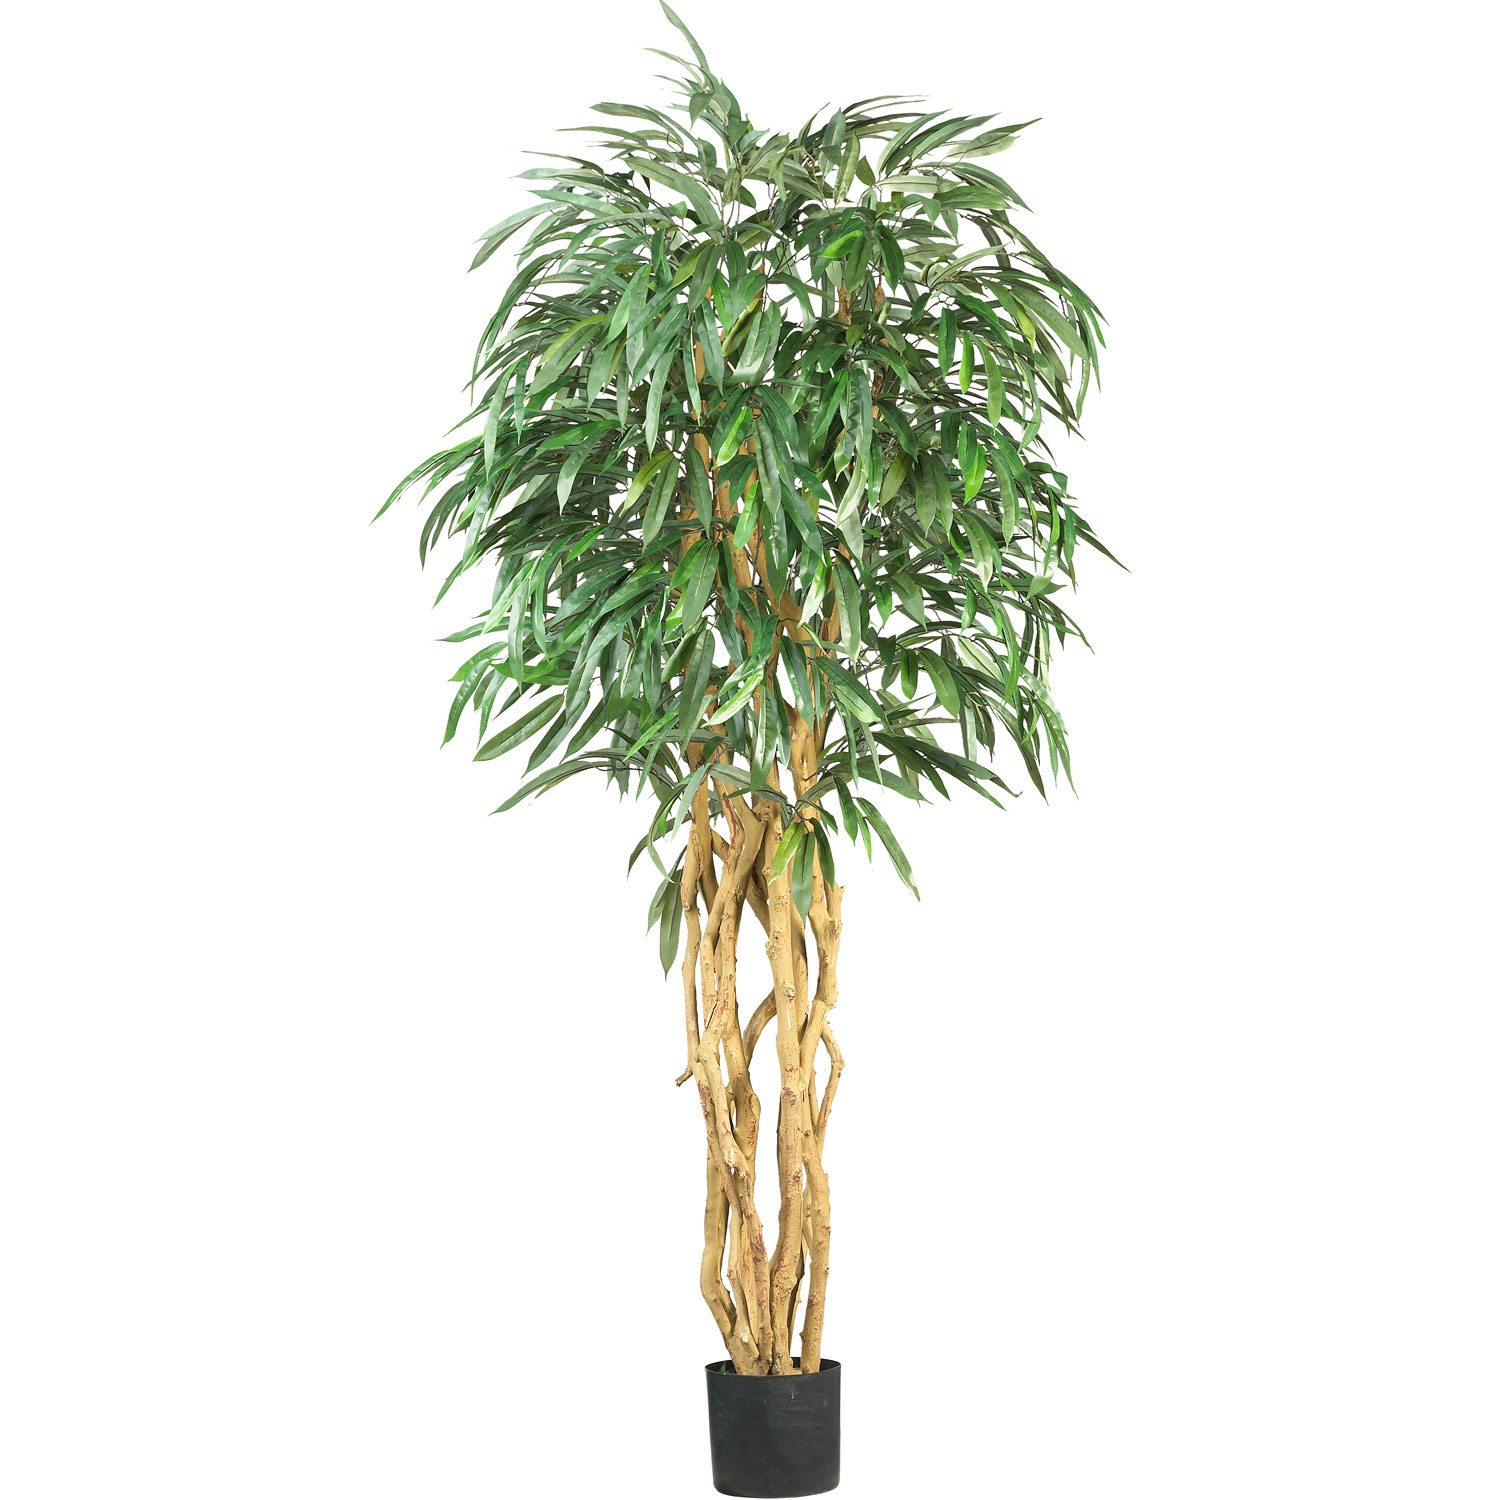 6 foot Weeping Ficus Tree: Potted 5213